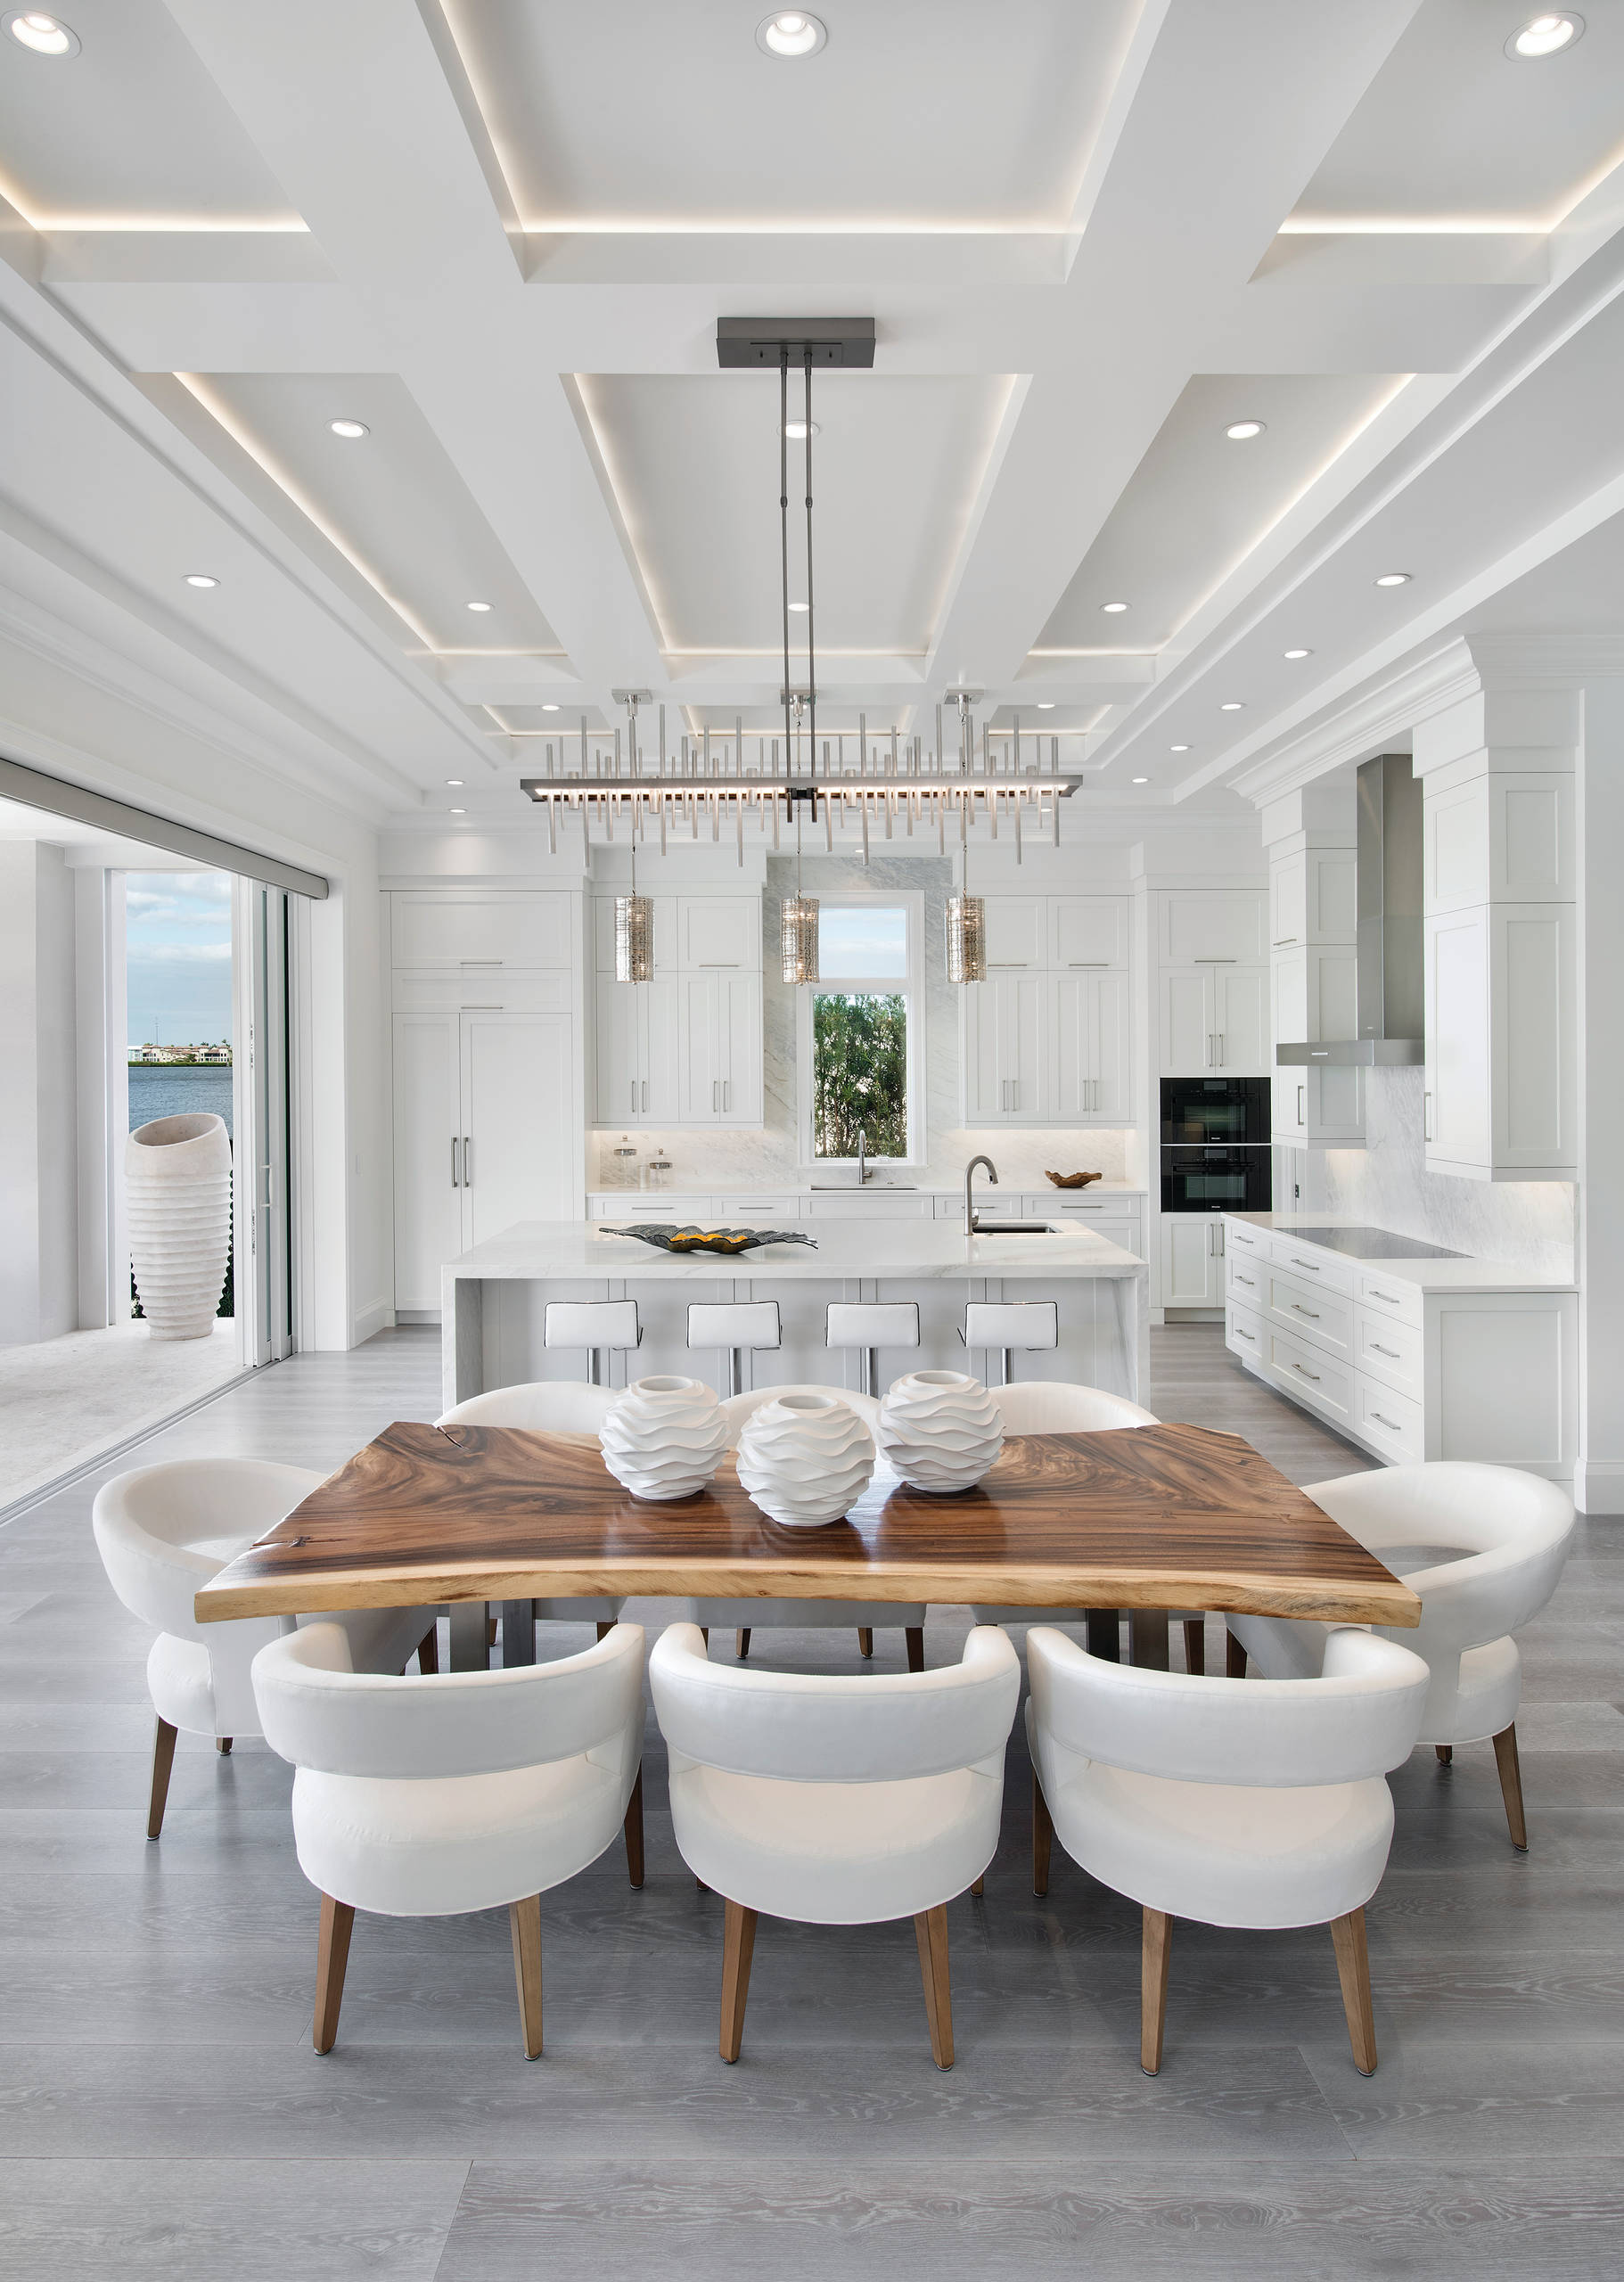 75 Beautiful White Dining Room Pictures Ideas February 2021 Houzz